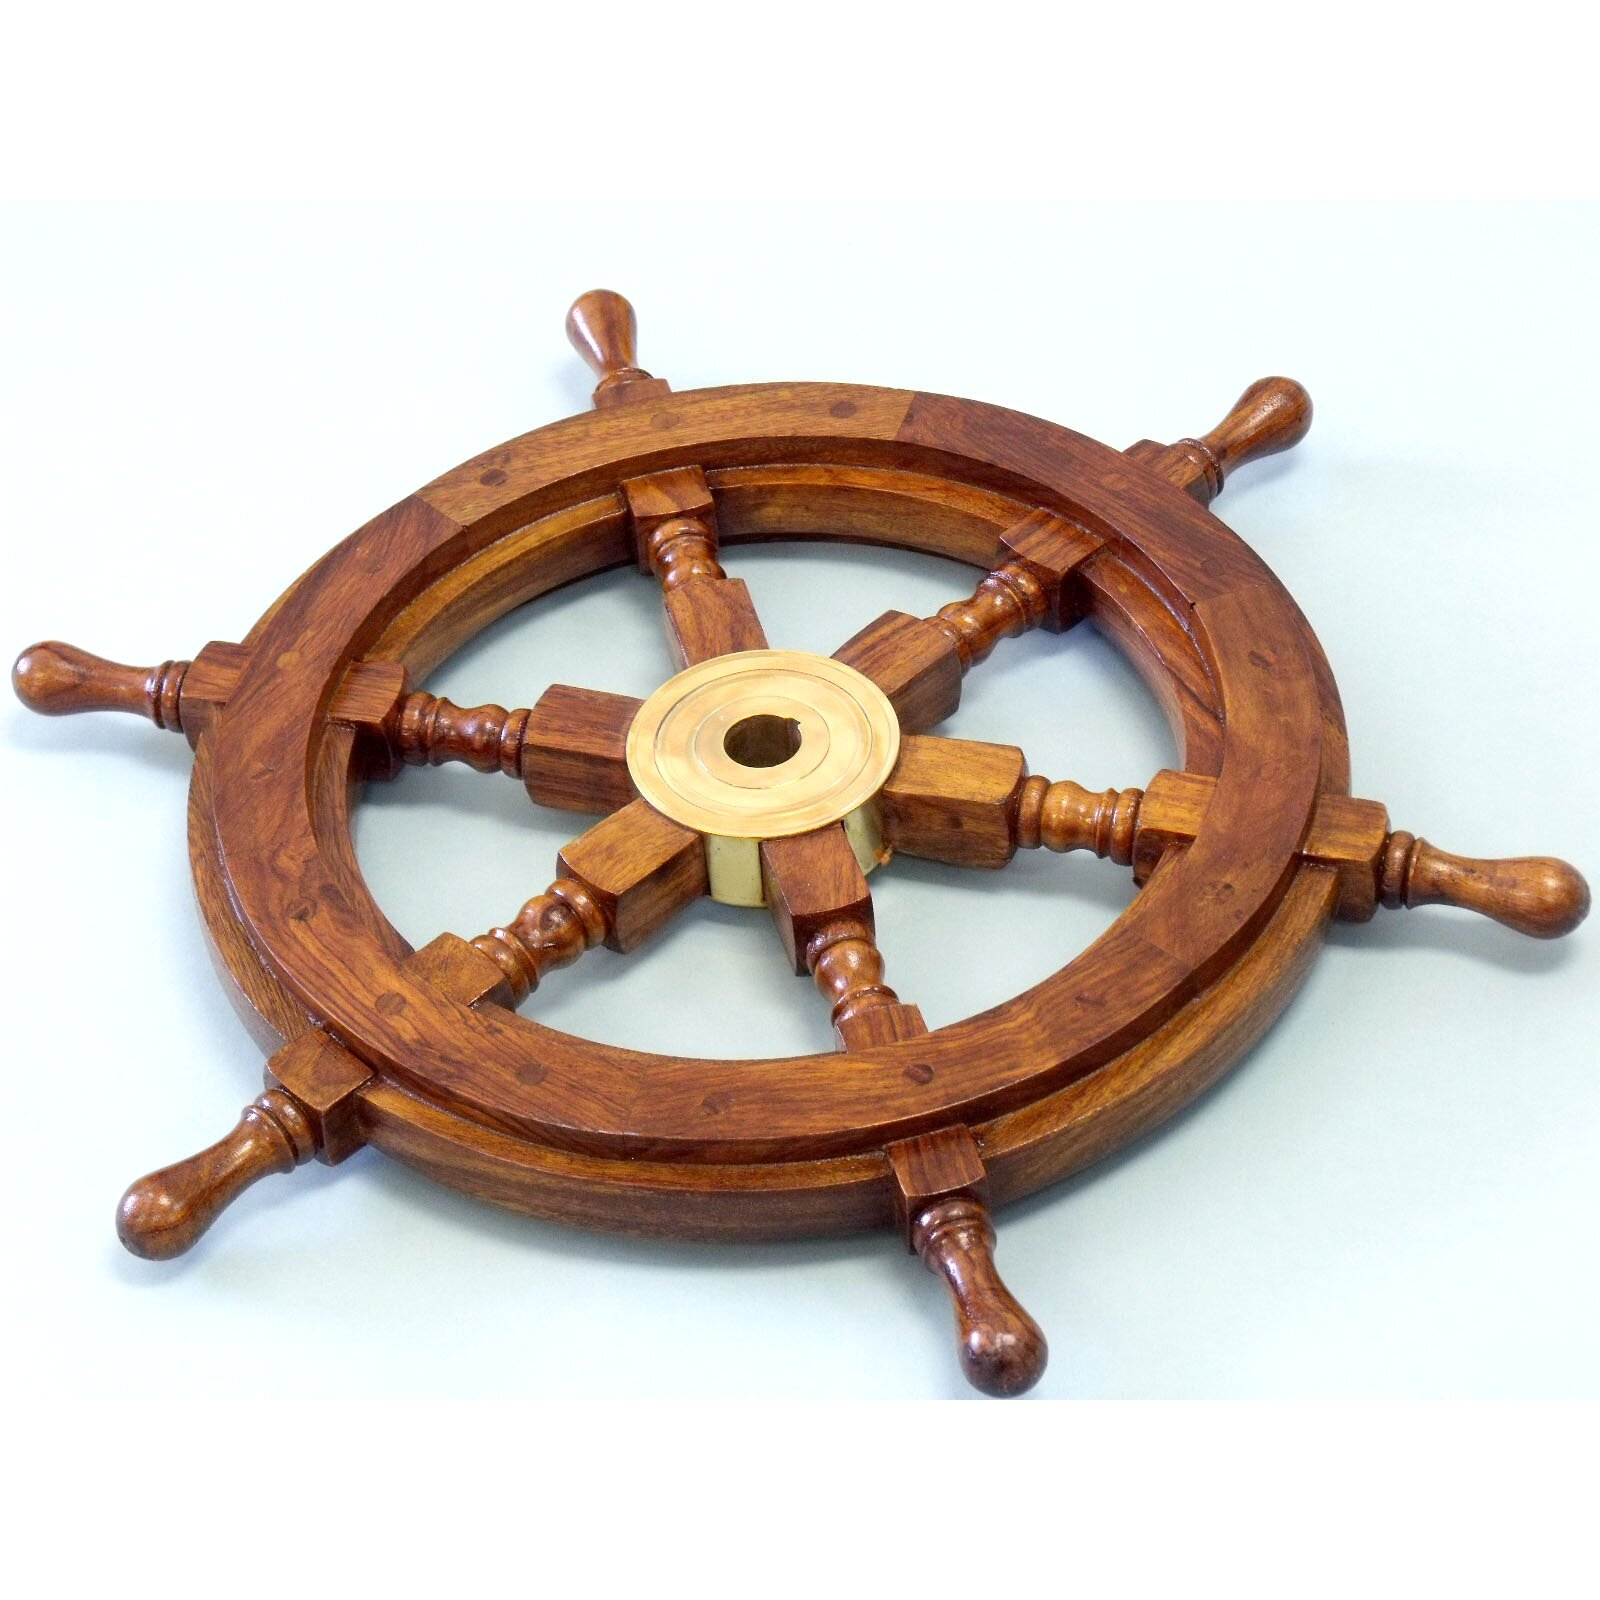 Nautical Wheel Decor: Handcrafted Nautical Decor Deluxe Class Ship Wheel Wall